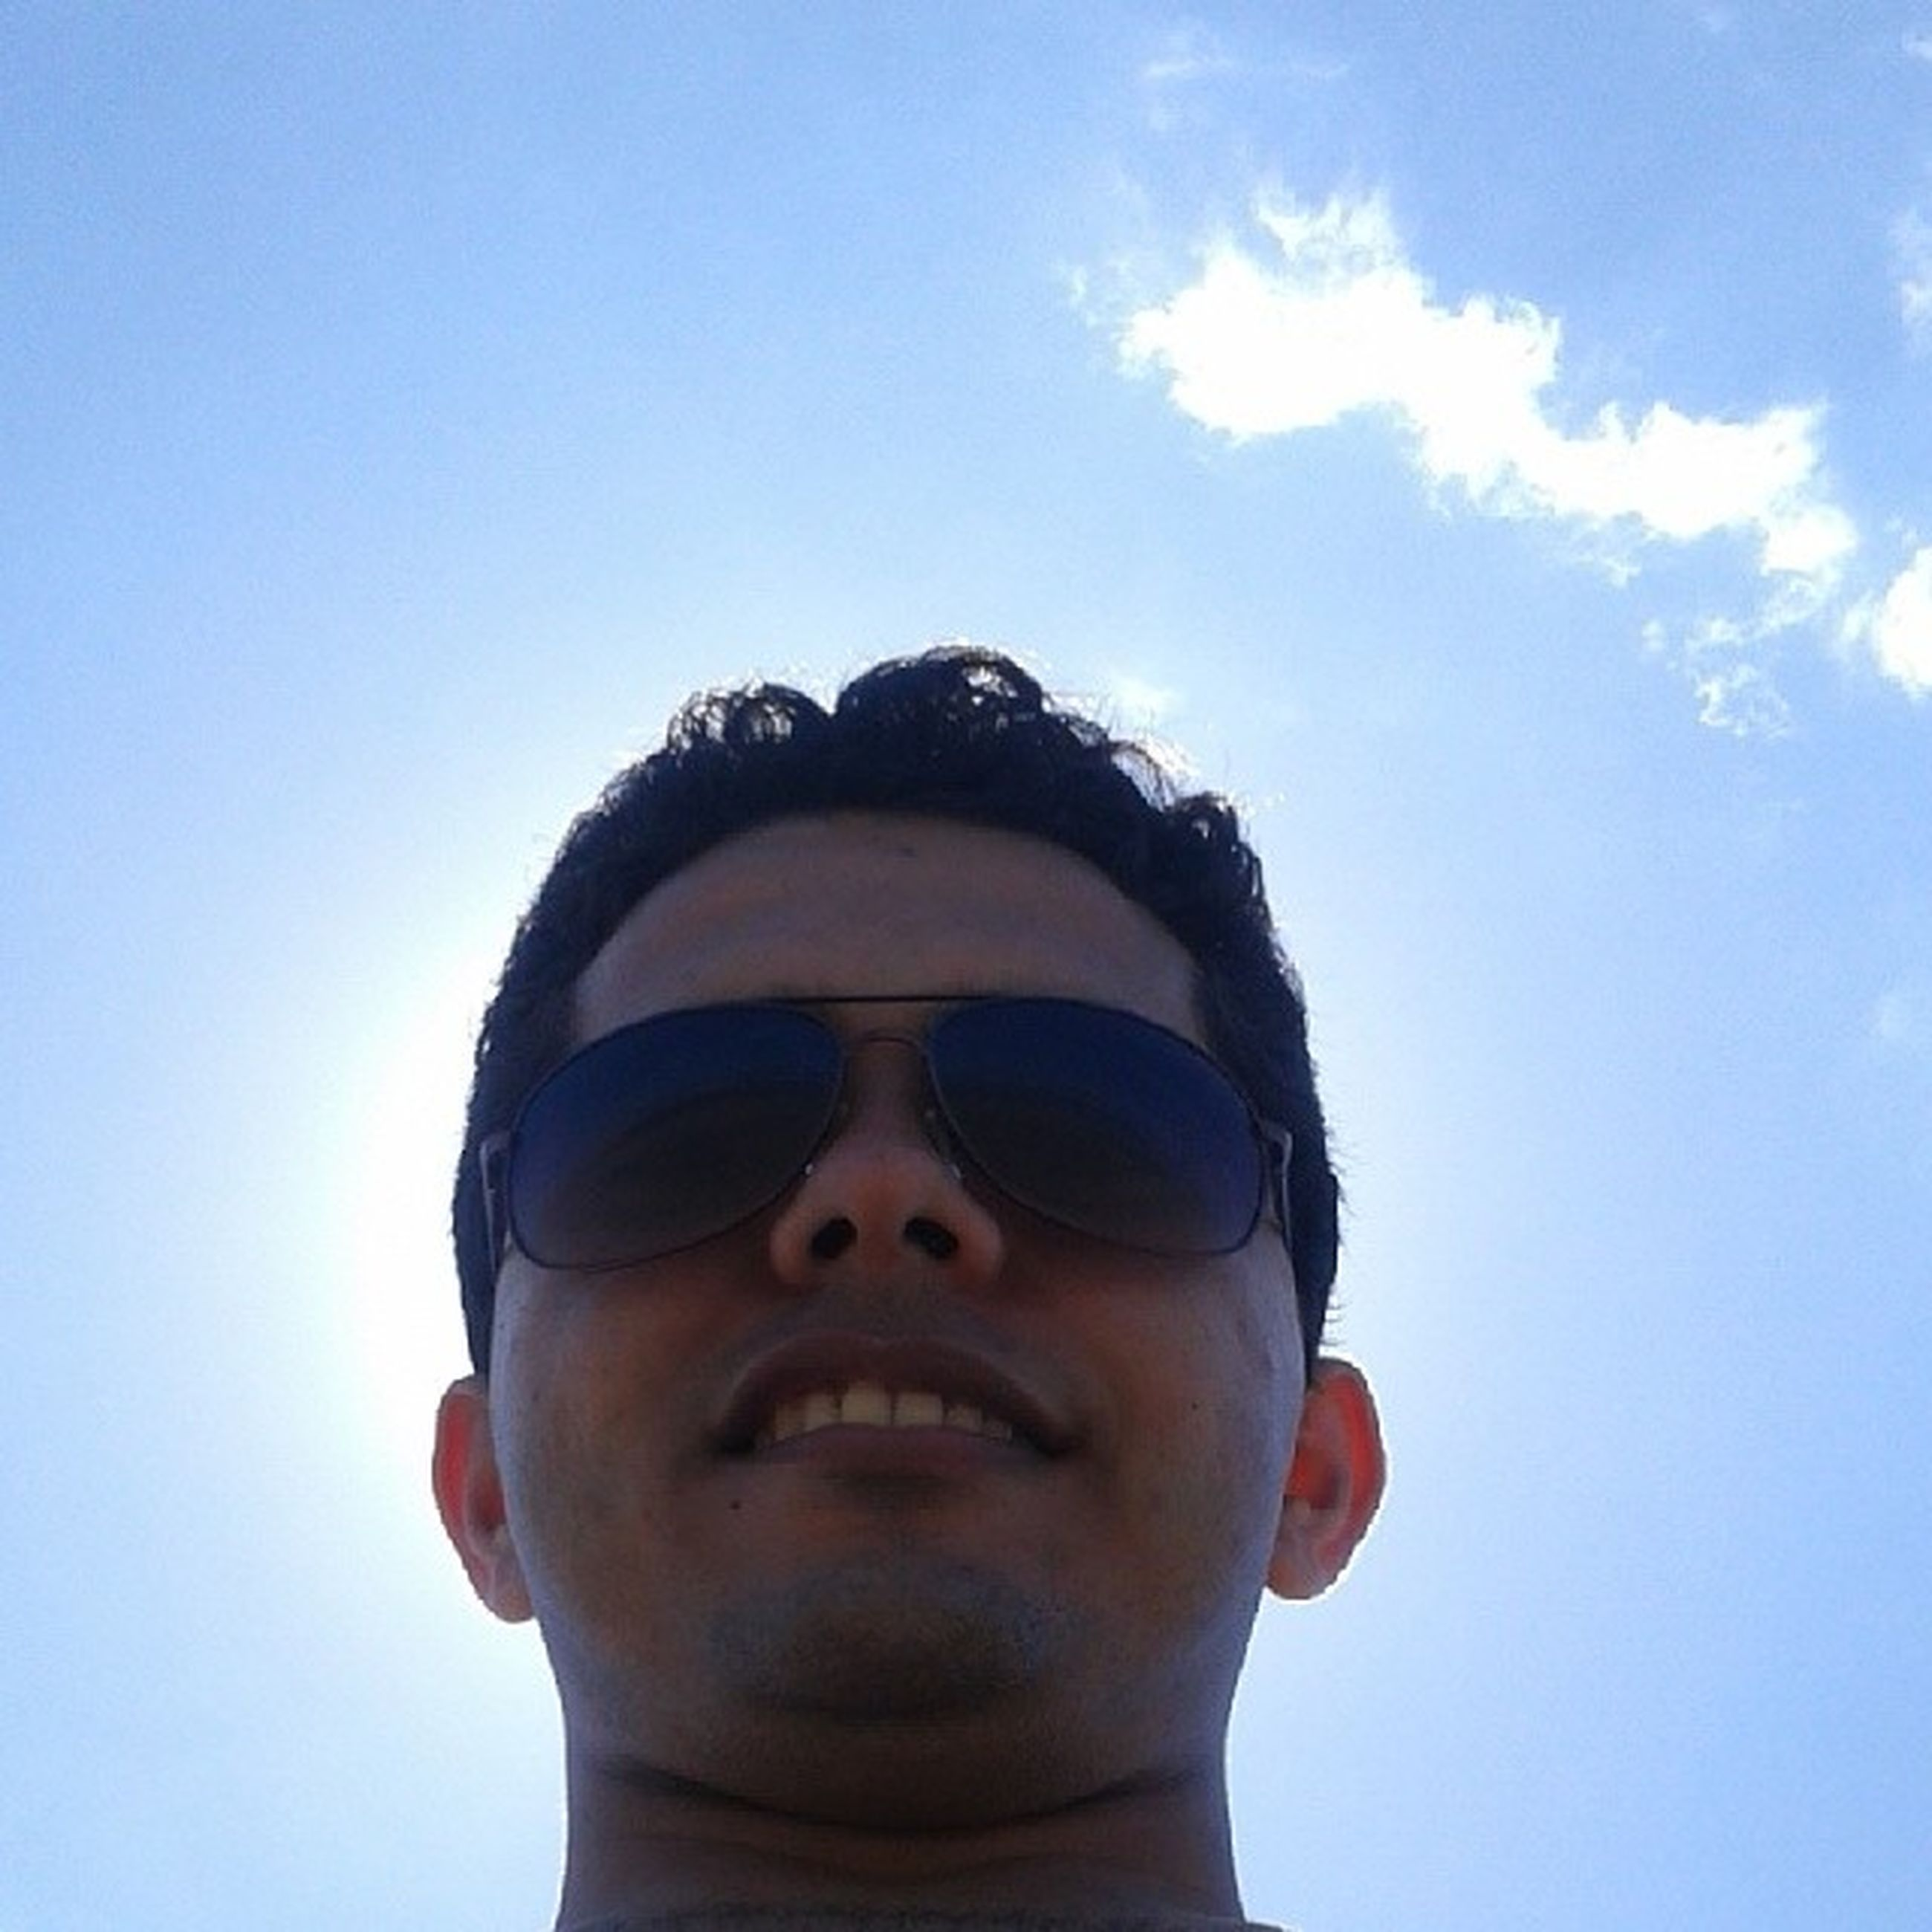 looking at camera, portrait, person, young adult, young men, front view, headshot, lifestyles, sunglasses, leisure activity, smiling, blue, mid adult men, low angle view, head and shoulders, mid adult, sky, happiness